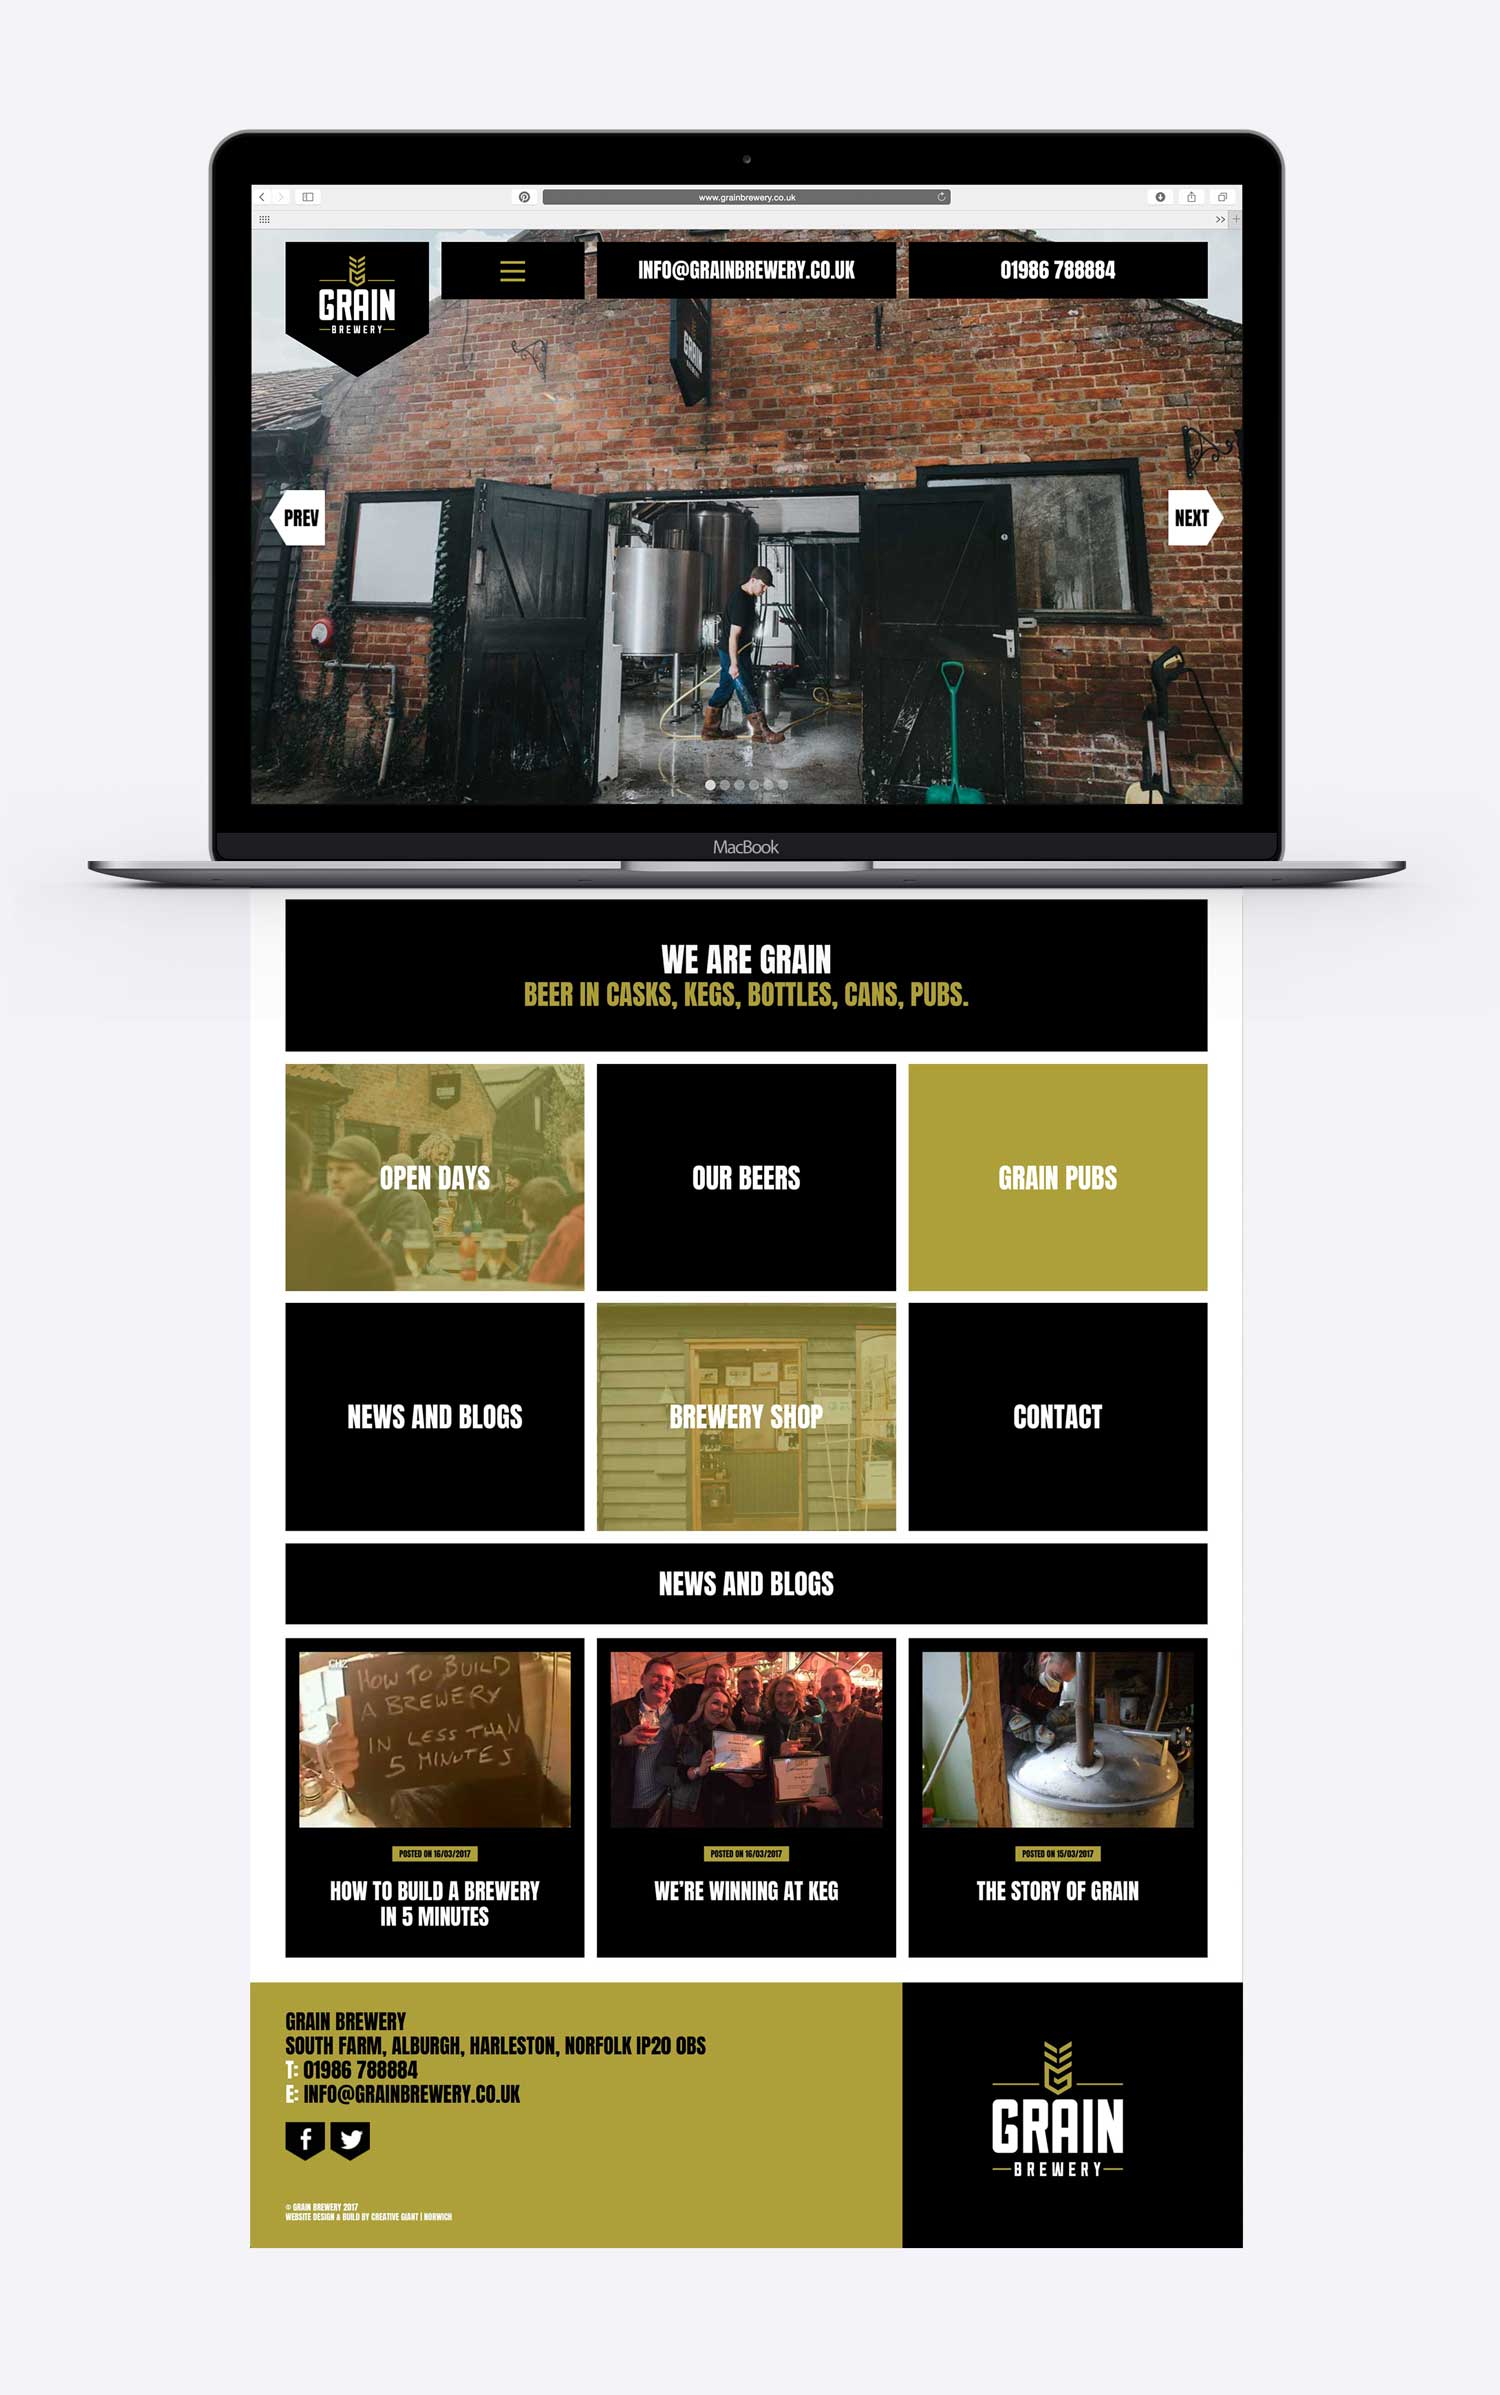 Grain-Brewery-Norfolk-Website-Design-Home-Page-laptop.jpg